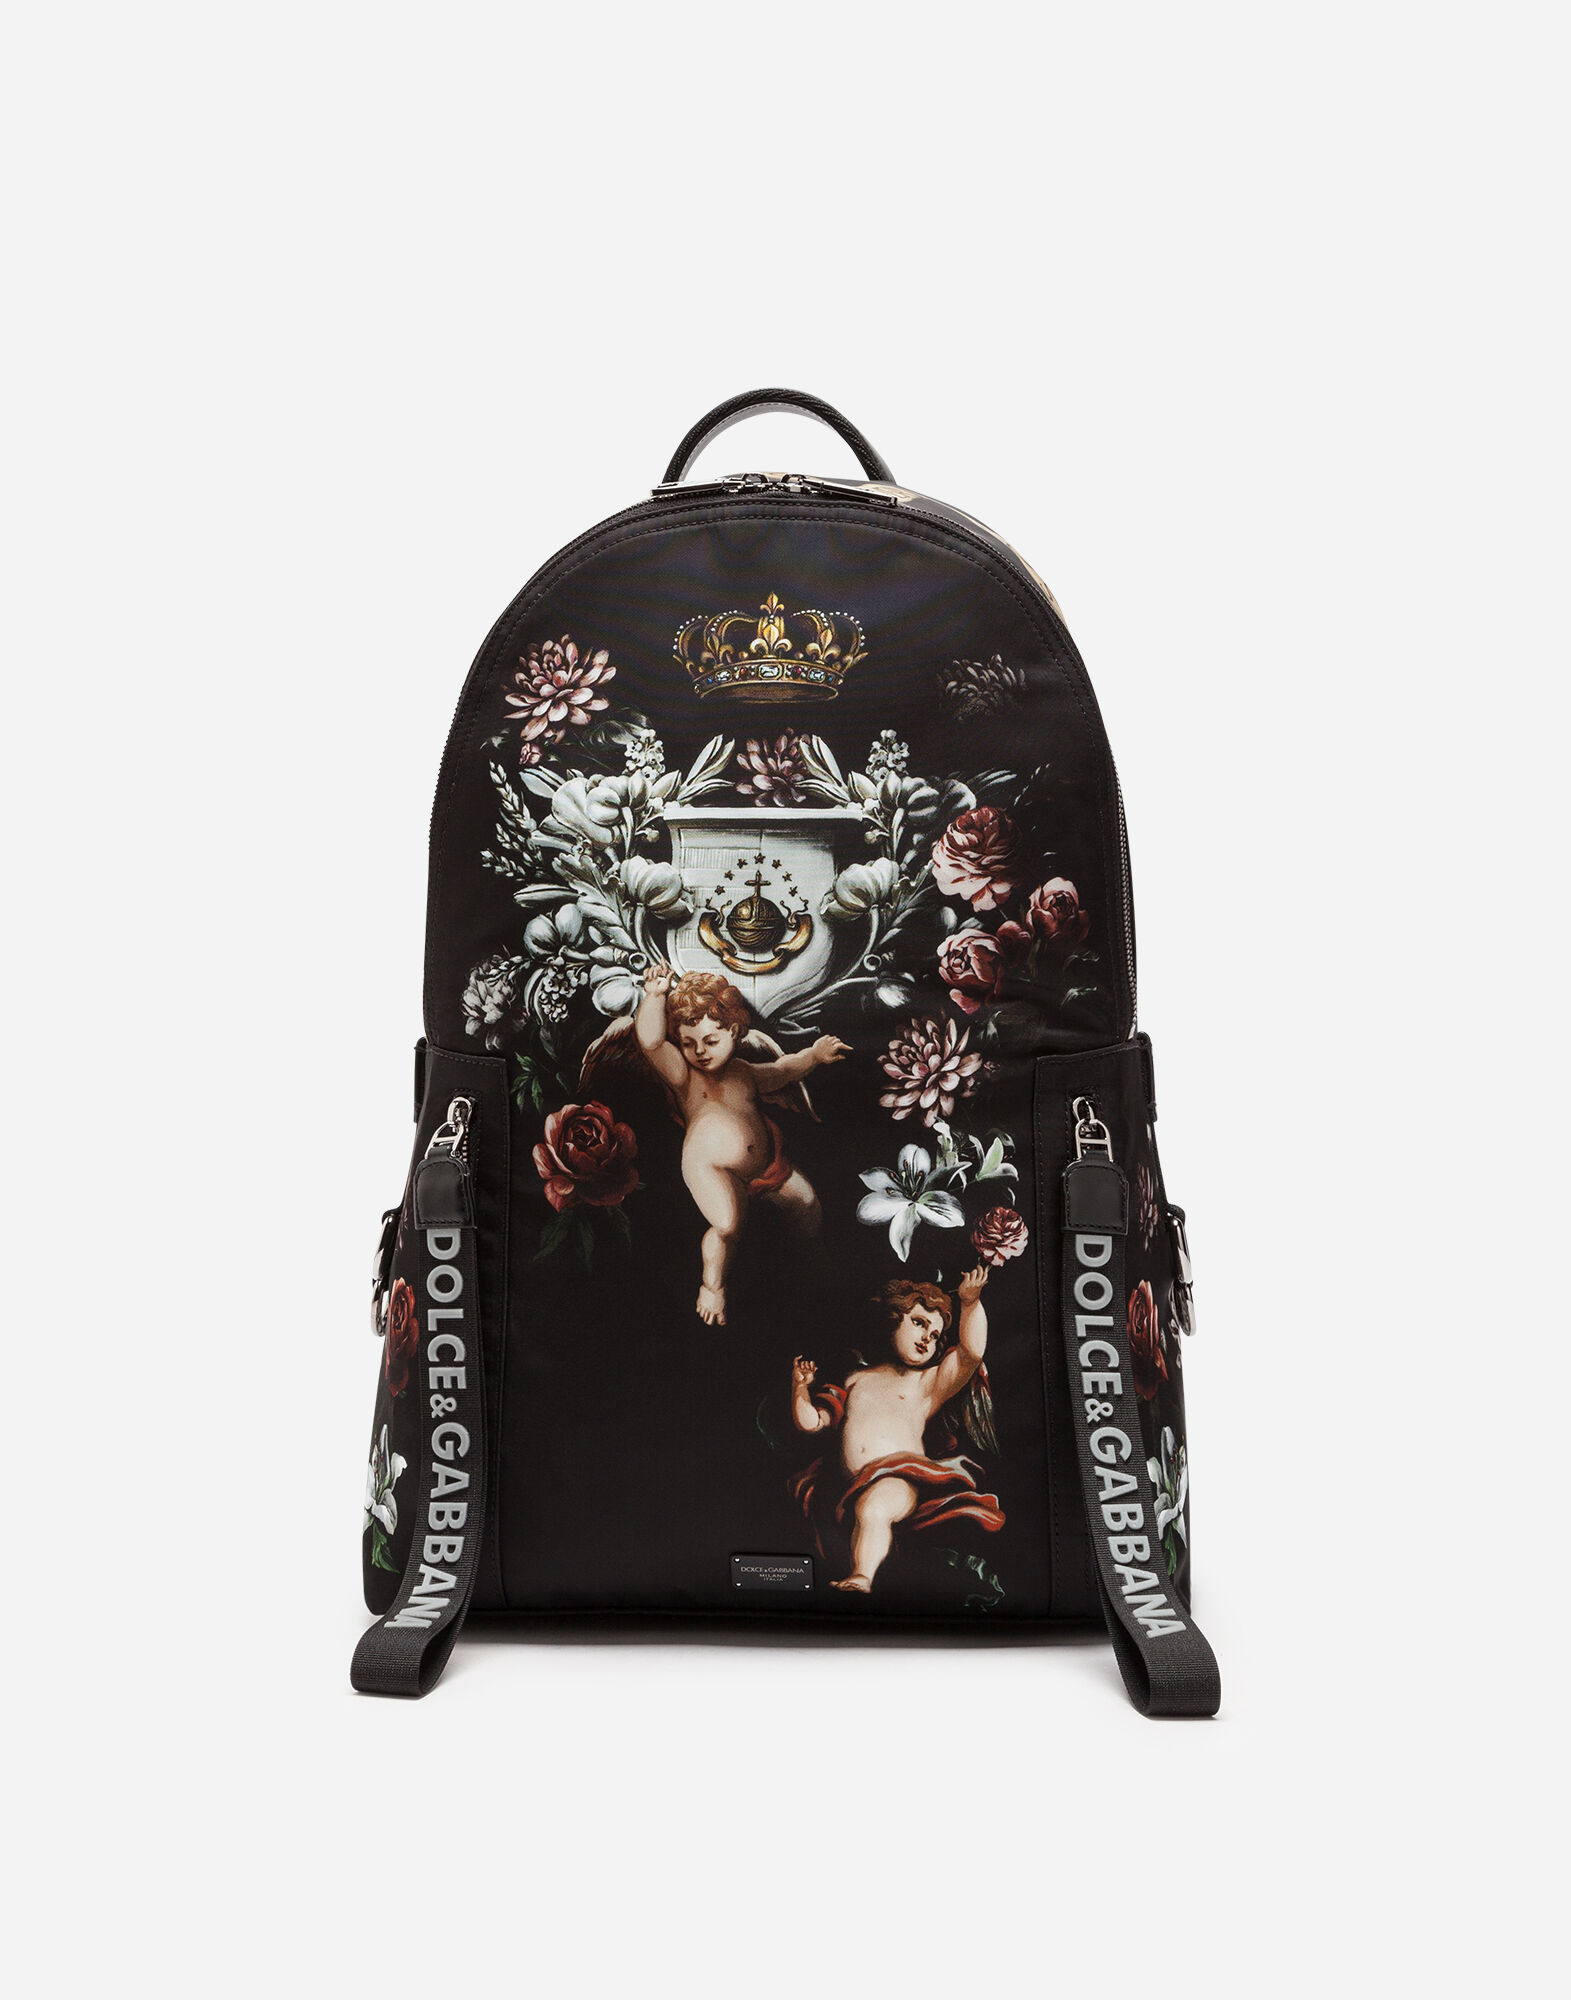 12423e31b893 Dolce gabbana printed nylon backpack jpg 804x1024 White nylon backpacks